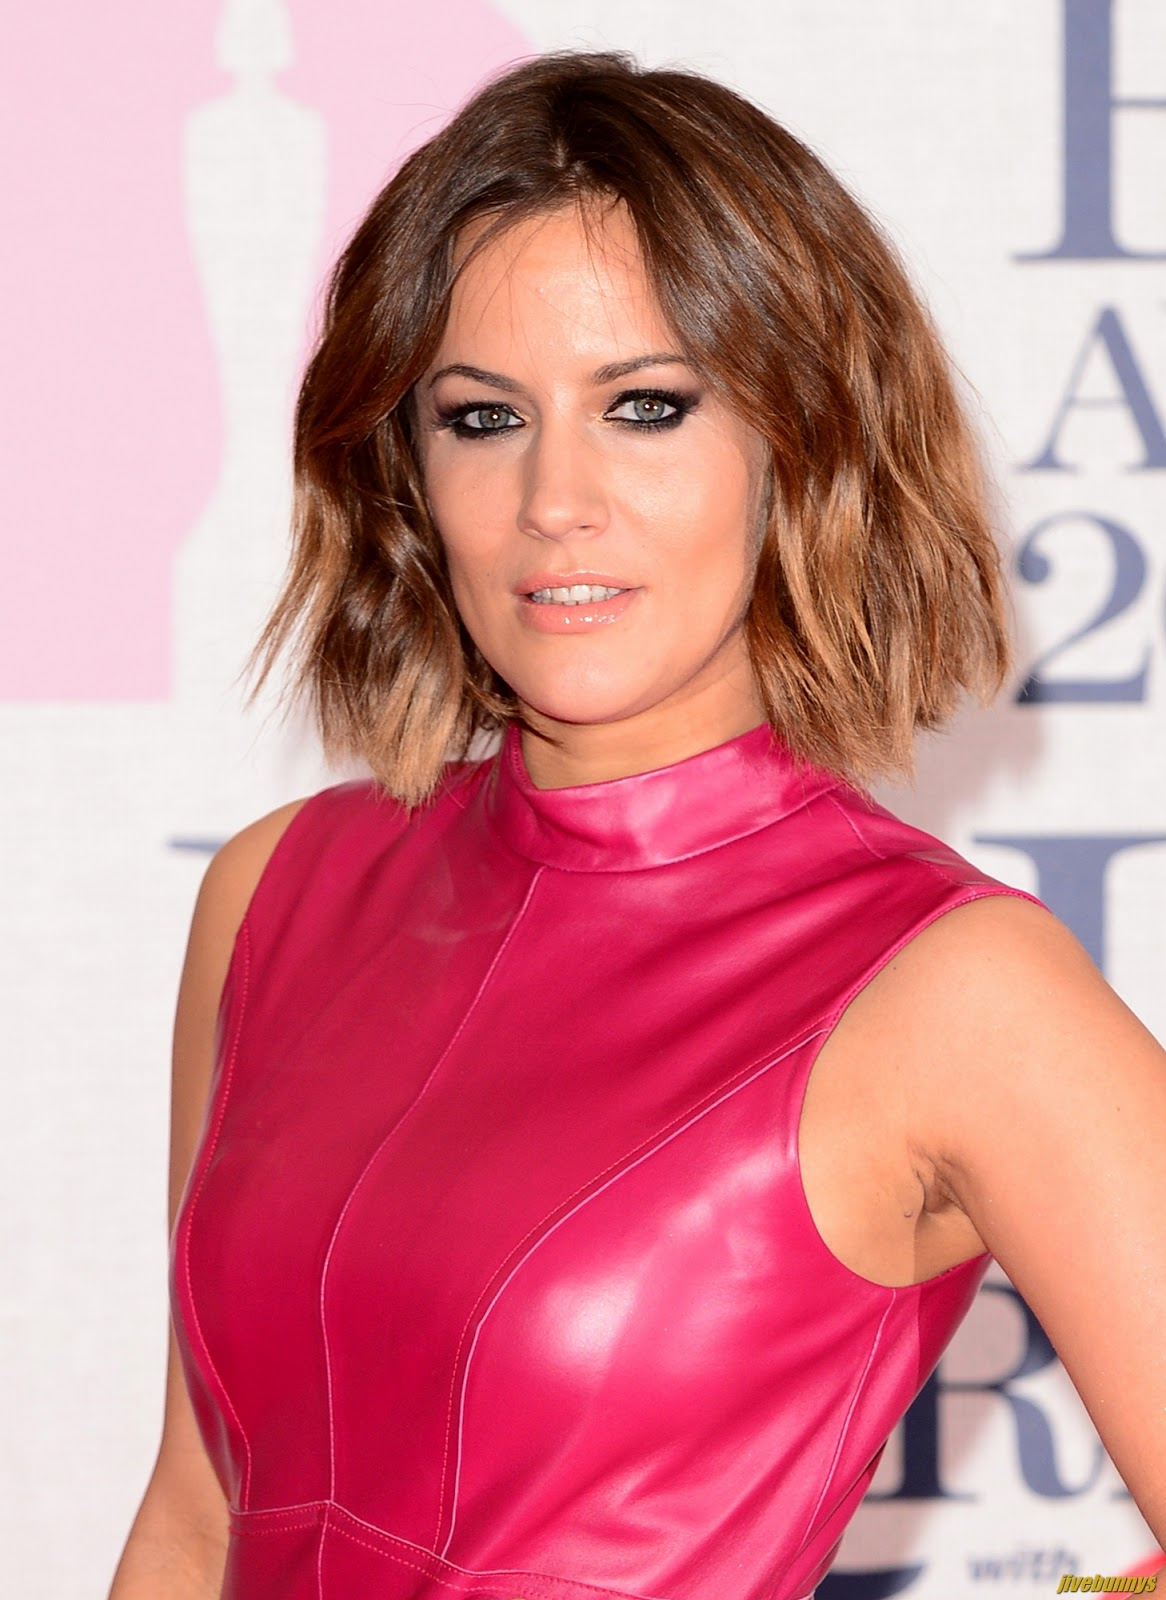 Apologise, but, Caroline flack sexy pics version has